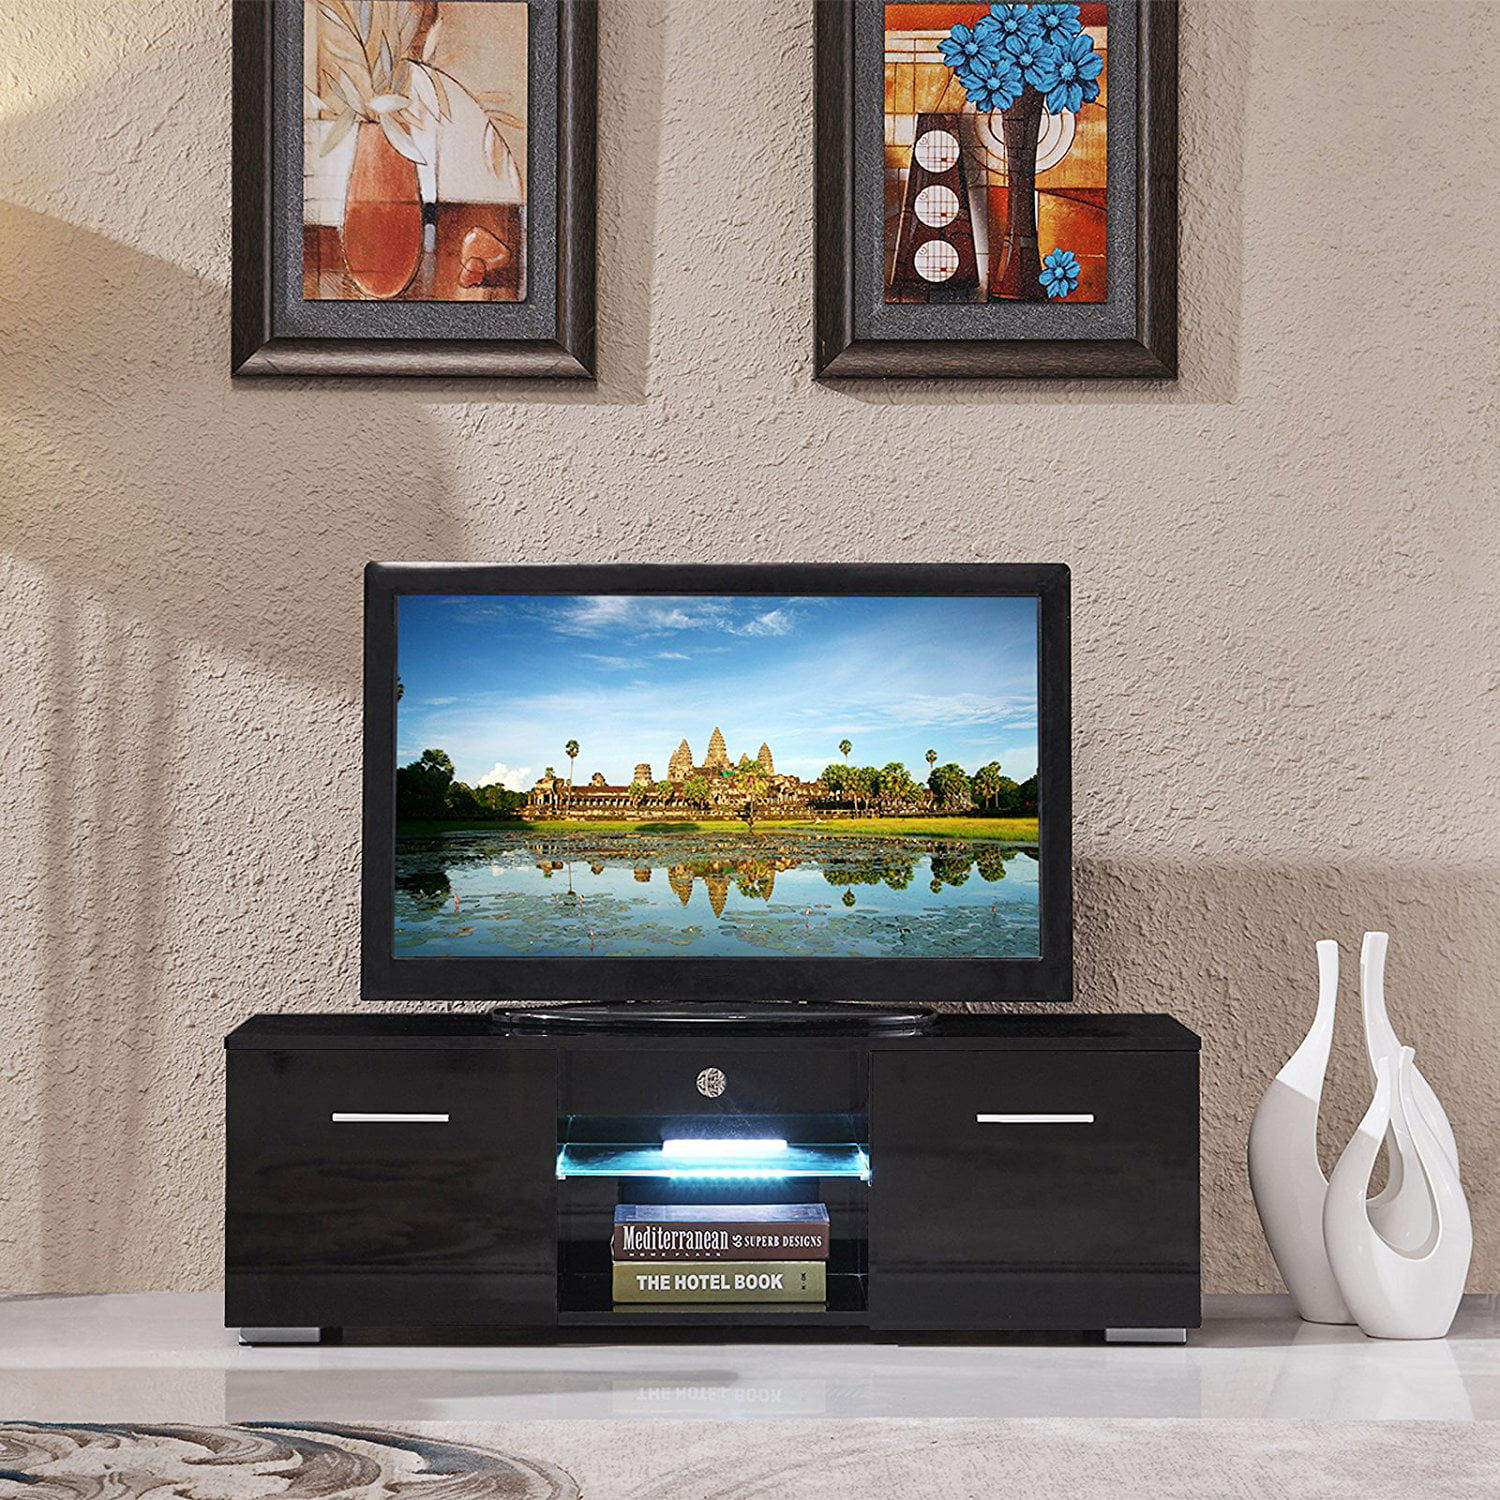 Mecor Tv Stand Media Console Cabinet Led Shelves With 2 Drawers For Living Room Storage High Gloss Black Up To 47 Inch Screens